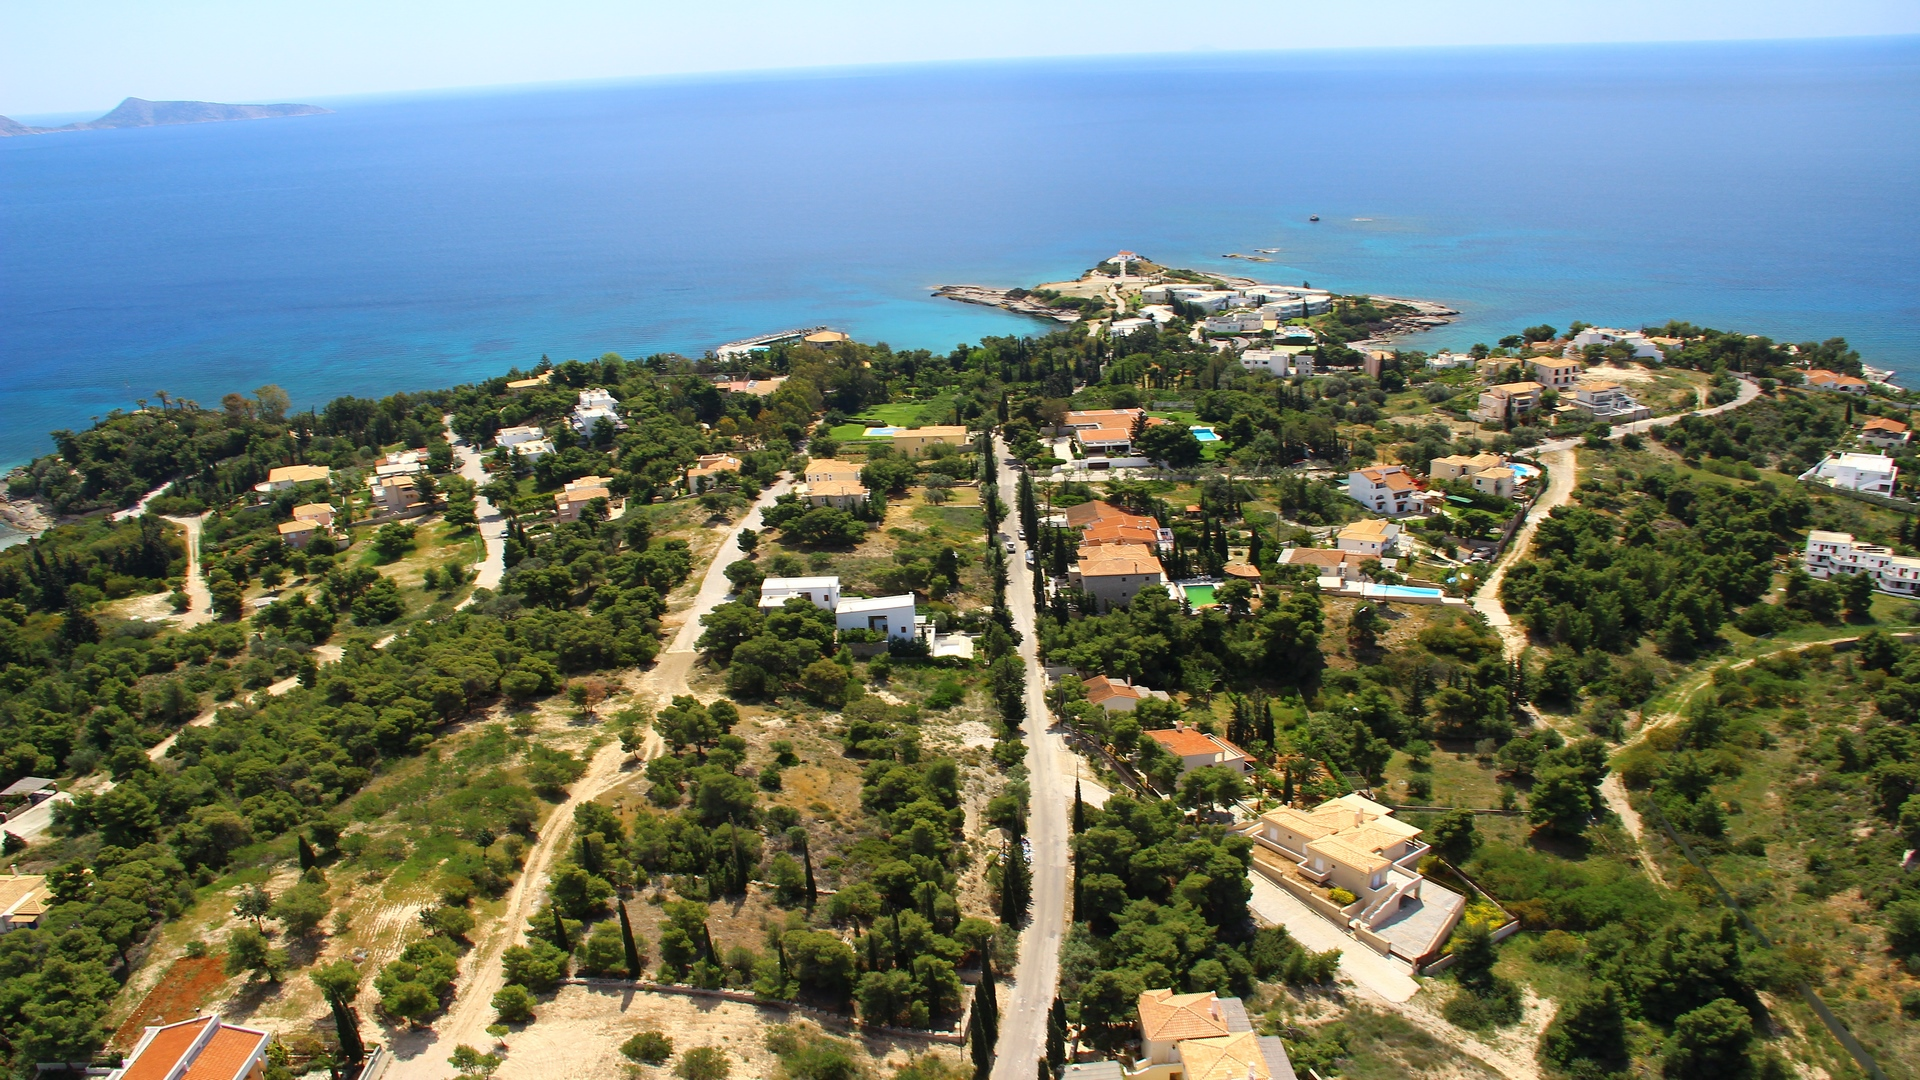 Land in Porto Heli, Peloponnese